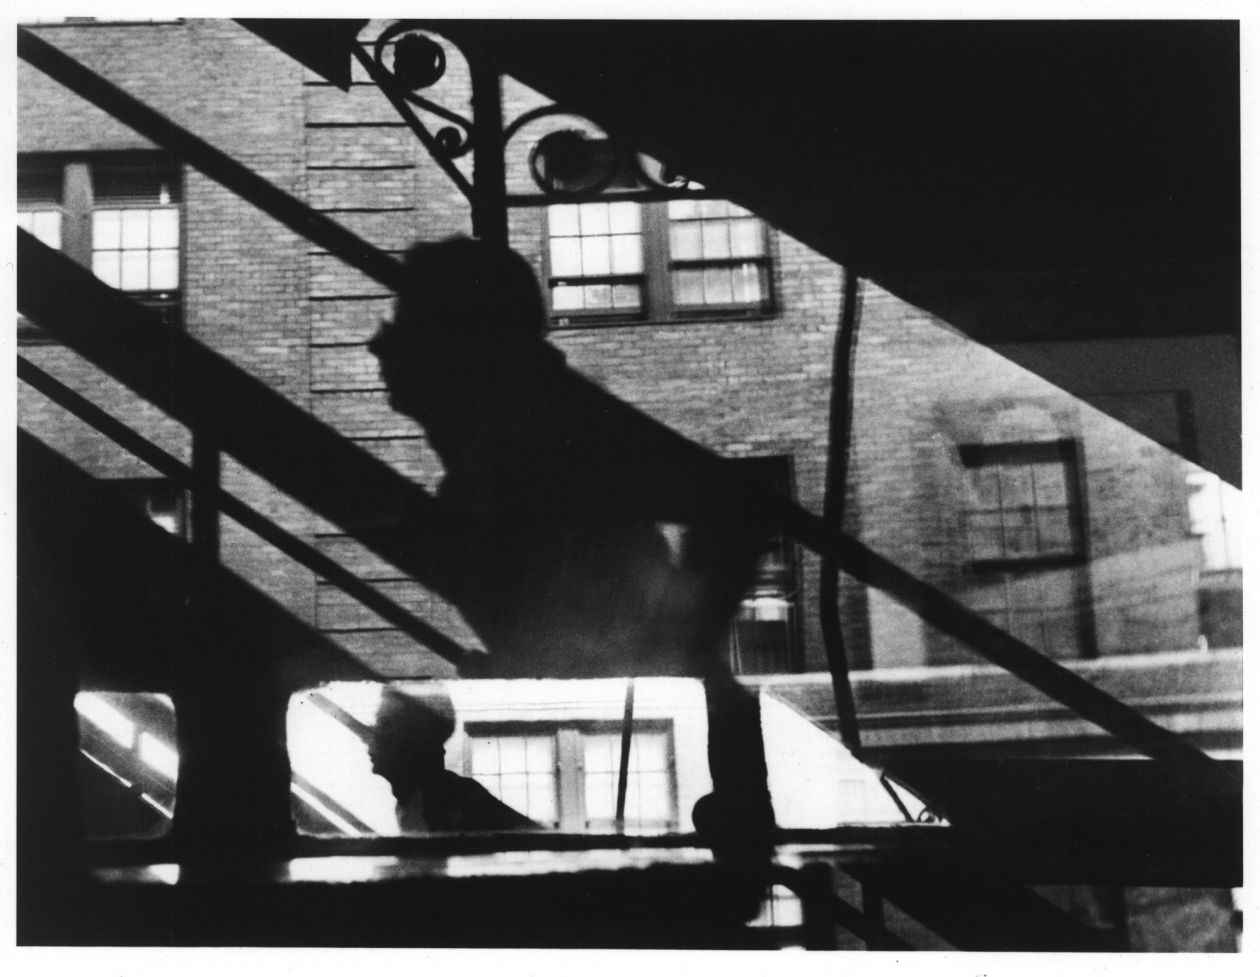 Win, Place and Show, 3rd Ave East (1947) by Louis Faurer